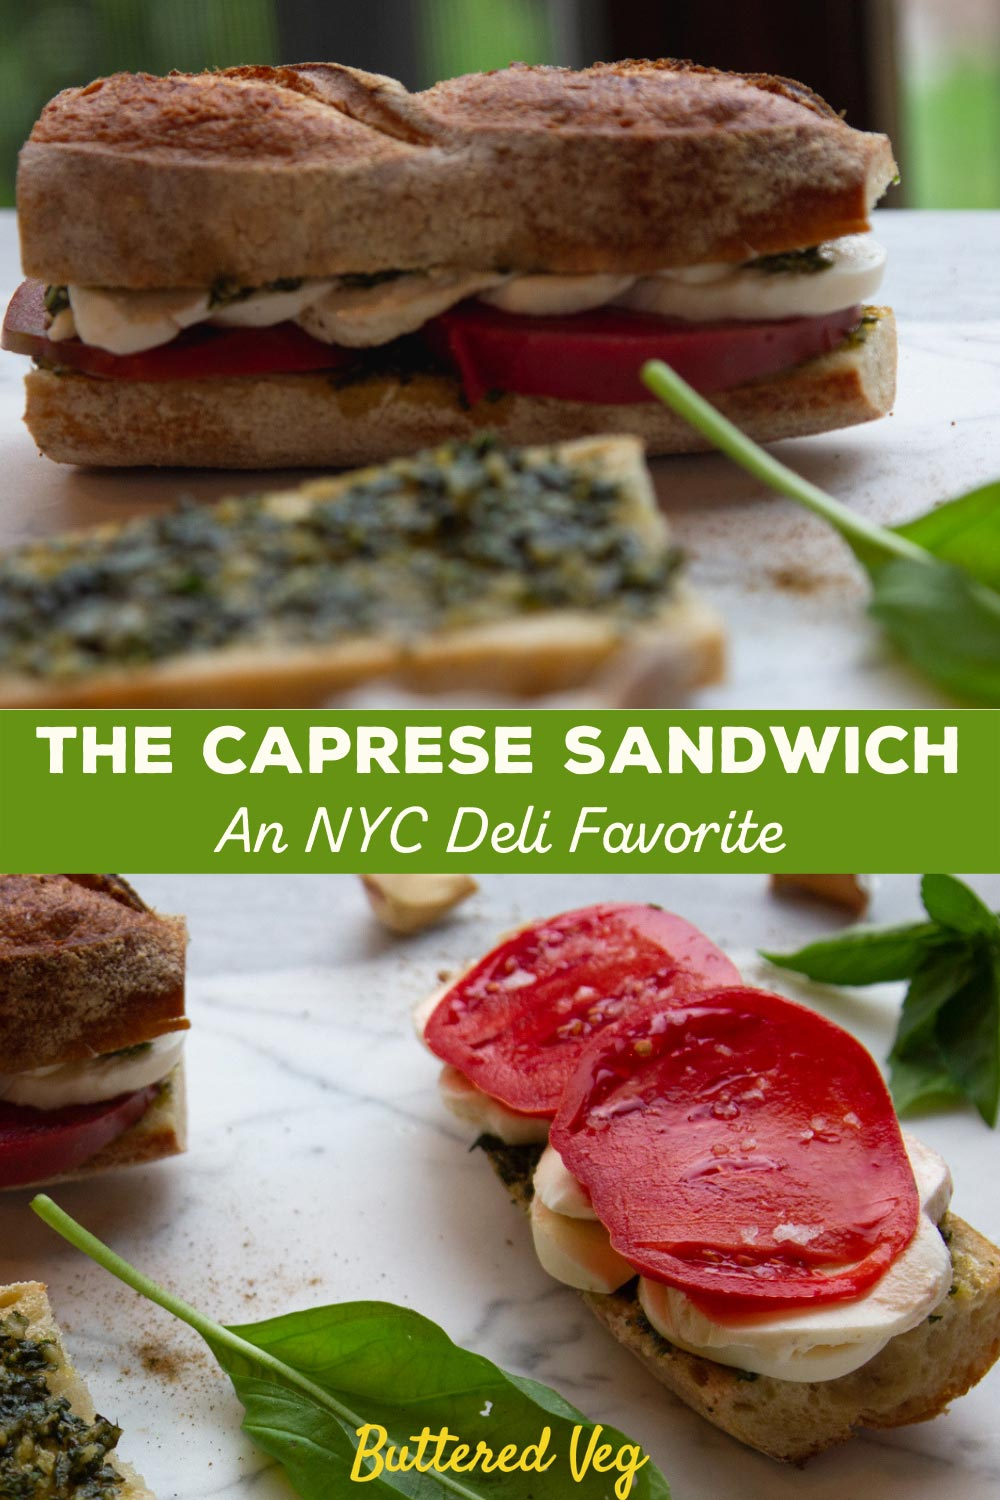 Vegetarians everywhere can always count on the satisfying caprese sandwich for lunch or brunch; made with creamy fresh mozzarella, tomato, olive oil, and basil. #sandwich #italian #lunch #butteredveg